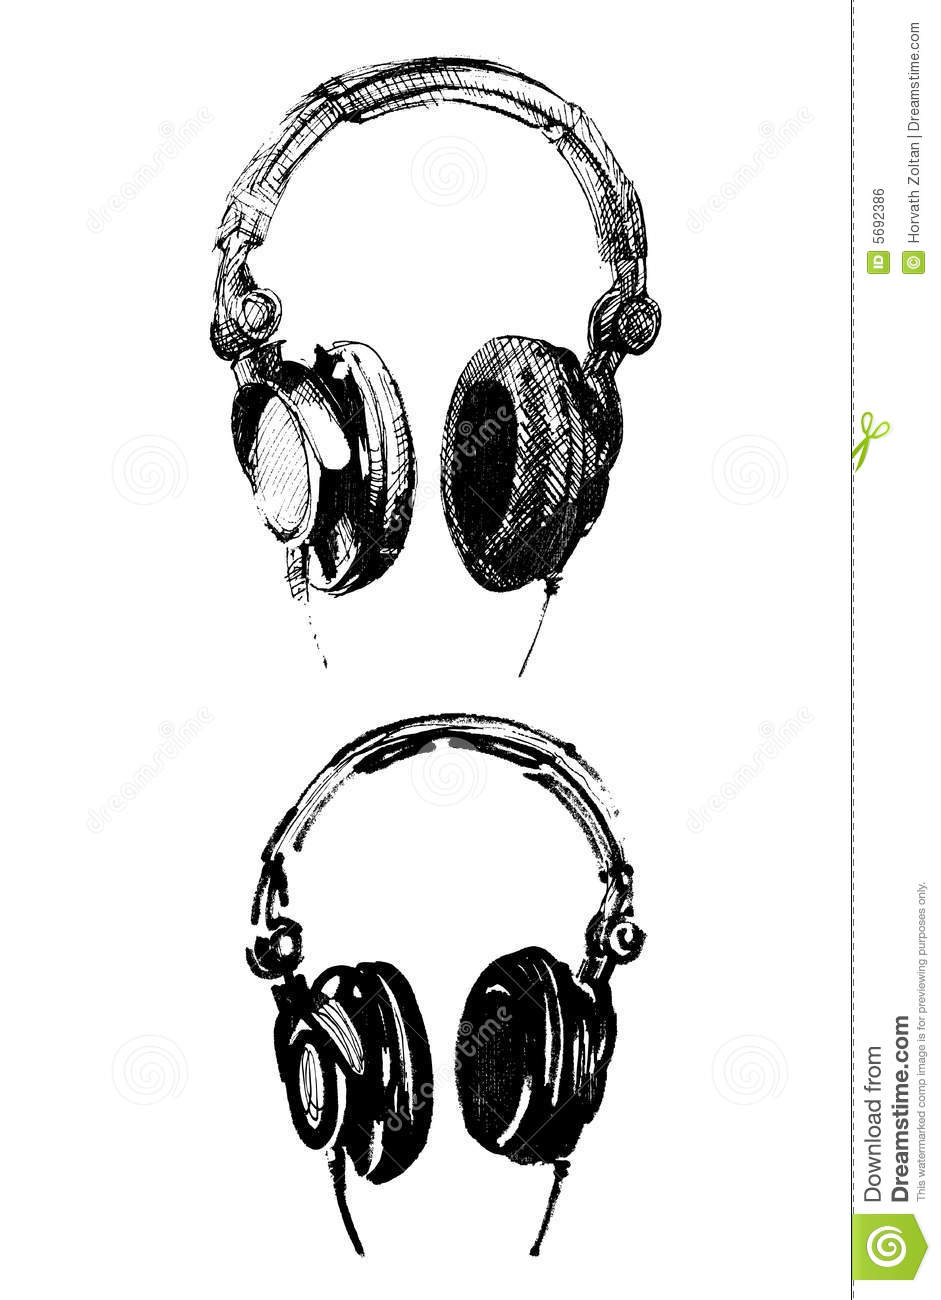 handmade headphone illustrations